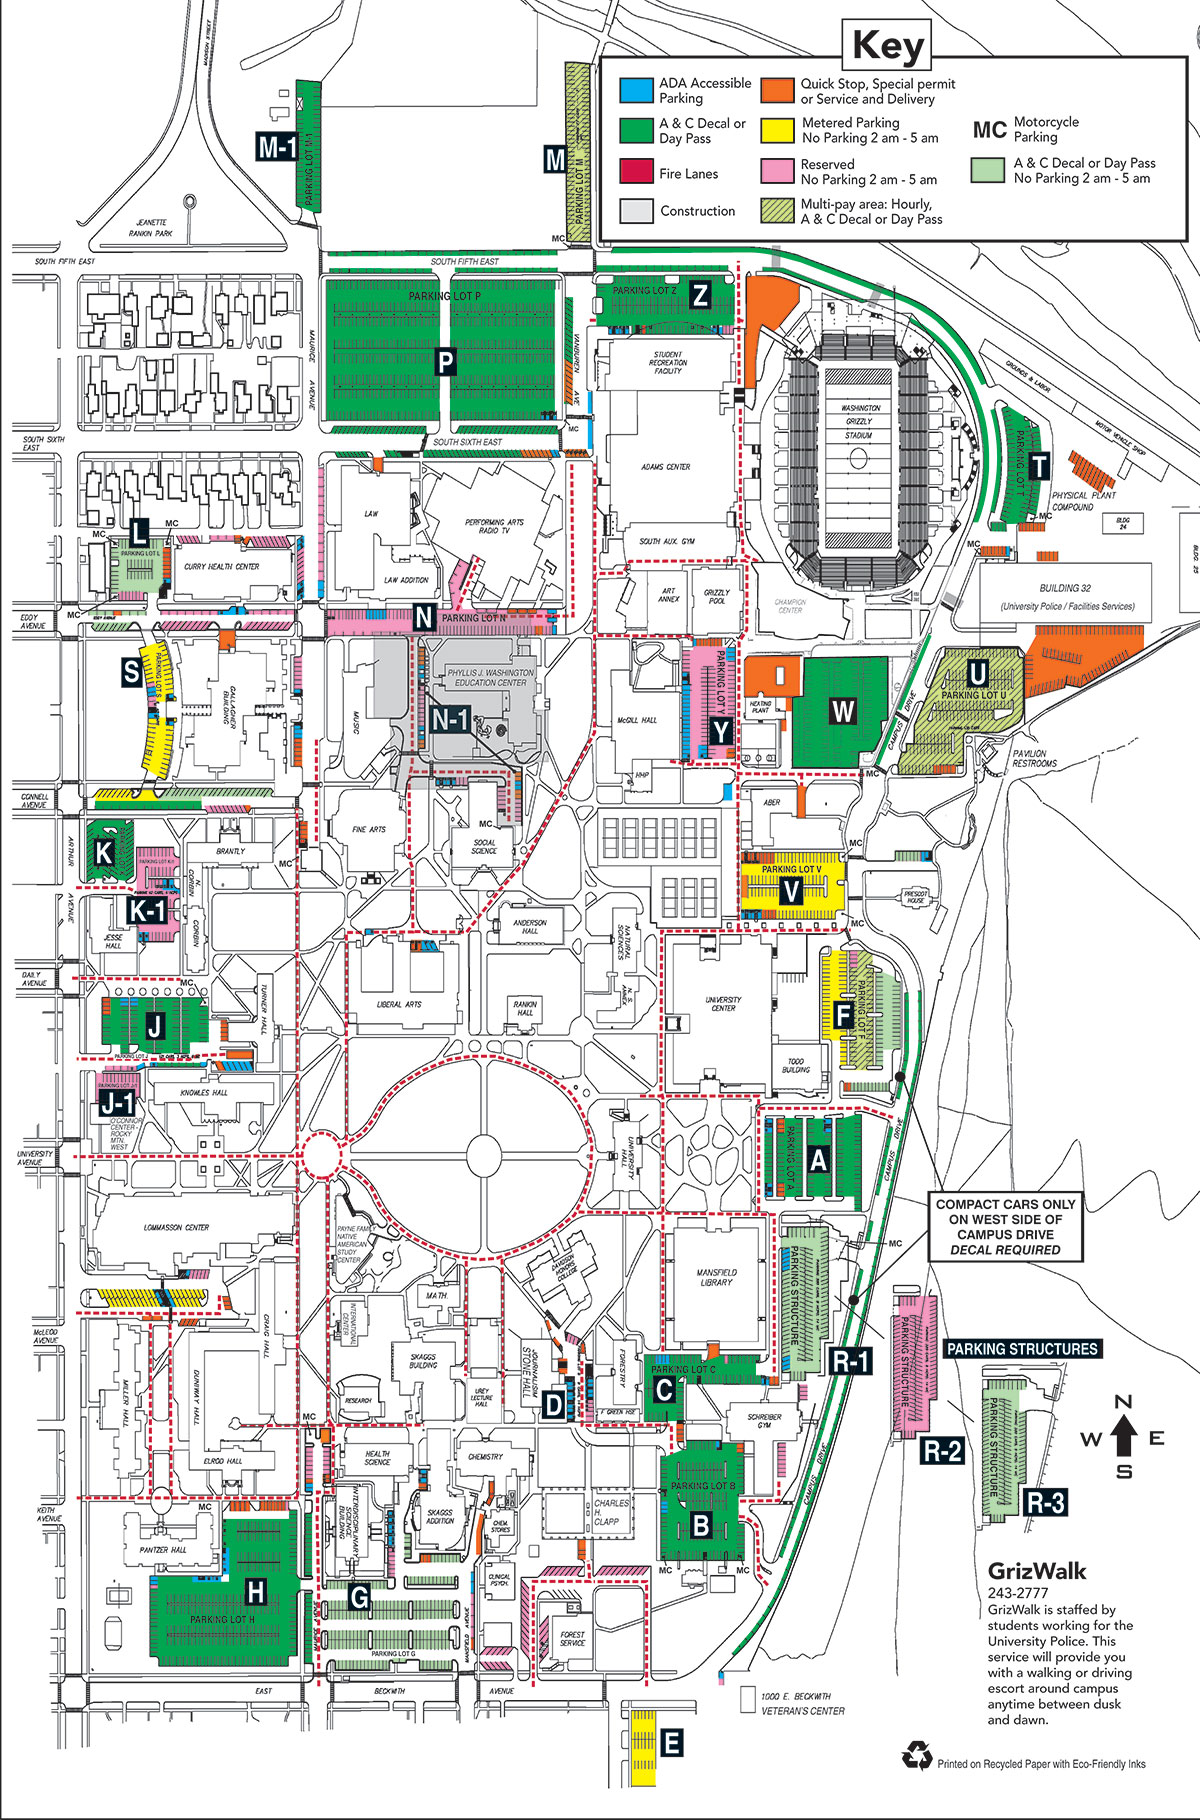 Parking Maps - UM Police Department - University Of Montana on wmu campus map, university at buffalo campus map, eastern florida state college campus map, national fire academy campus map, university of tokyo campus map, smcvt campus map, umd campus map, university hospital campus map, barry university campus map, lr campus map, umich campus map, u of i campus map, university of montevallo campus map, central michigan university campus map, university of central missouri campus map, university of michigan campus map, university of maryland eastern shore campus map, miller school of medicine campus map, siue campus map,